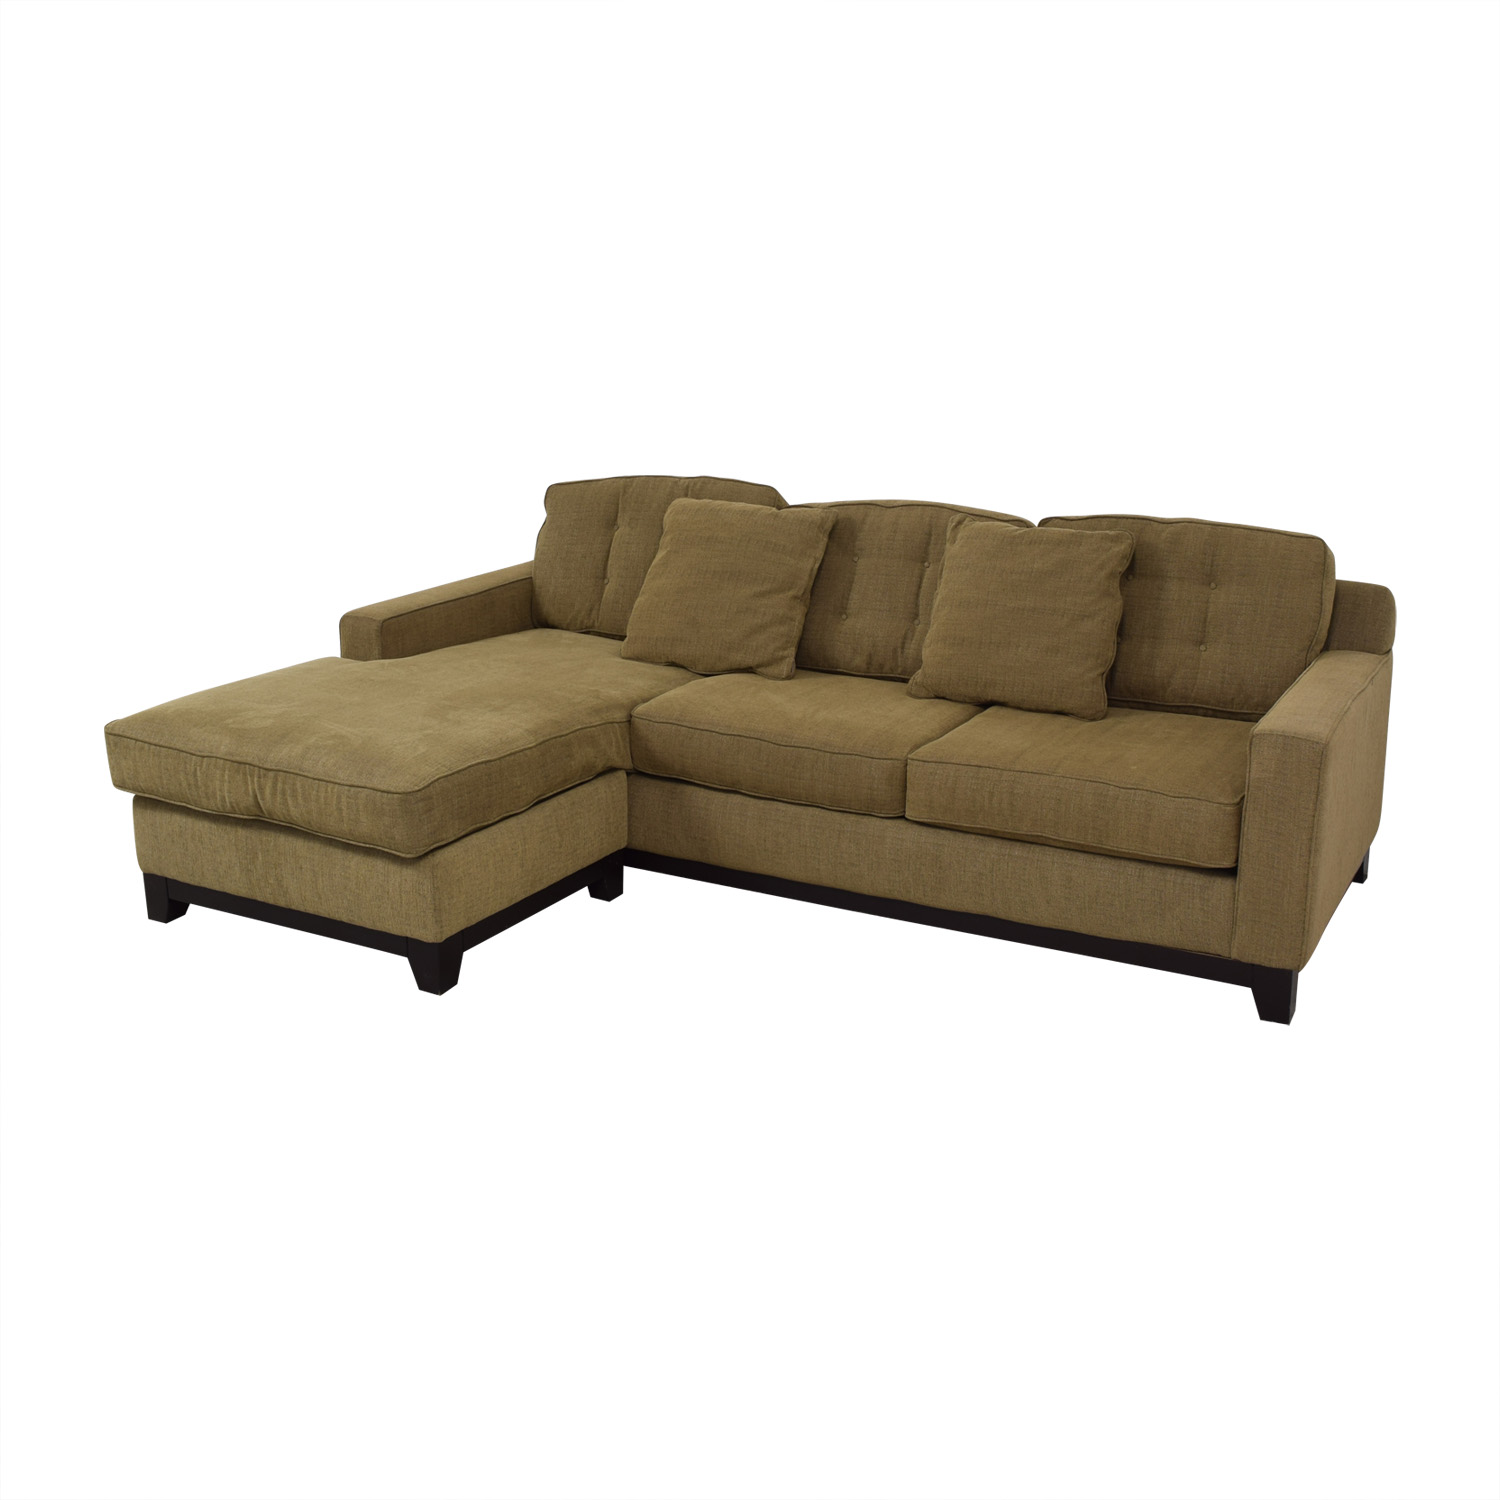 Pleasing 56 Off Jonathan Louis Jonathan Lewis Brown Sectional Sofa Sofas Ocoug Best Dining Table And Chair Ideas Images Ocougorg